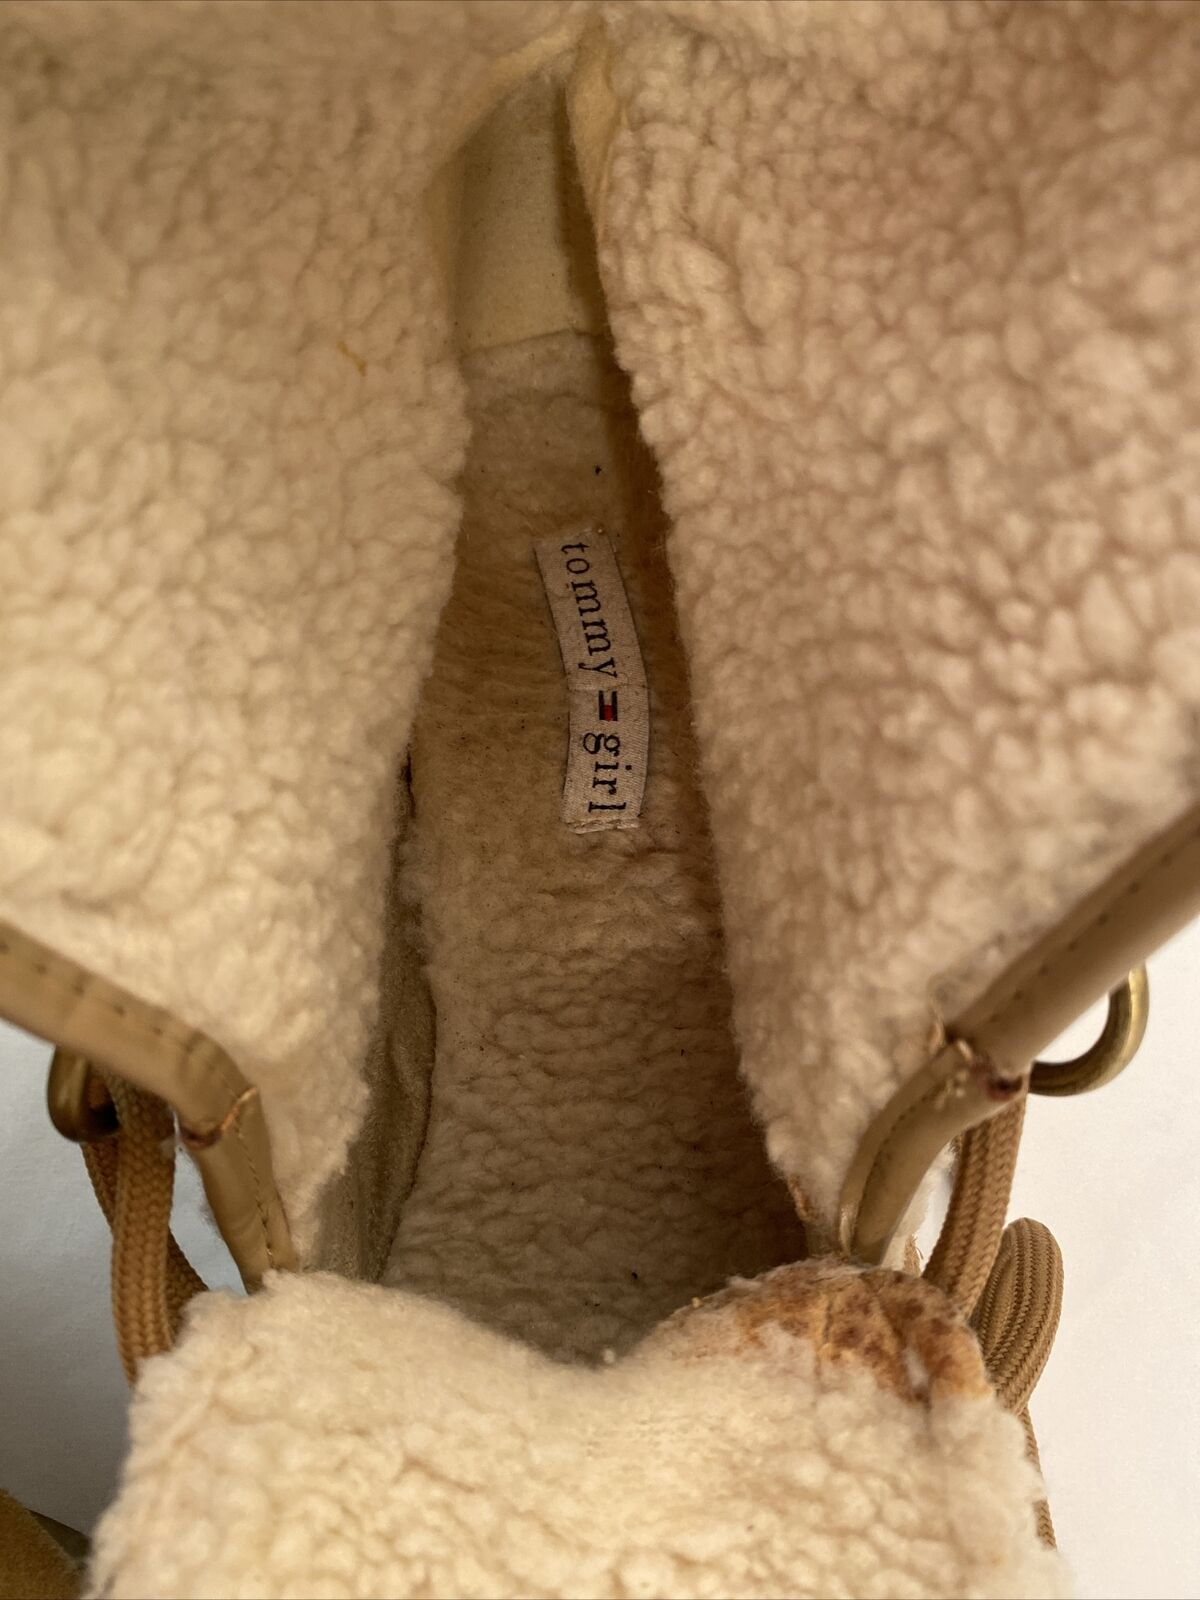 tommy hilfiger Brown boots women 8M - image 10